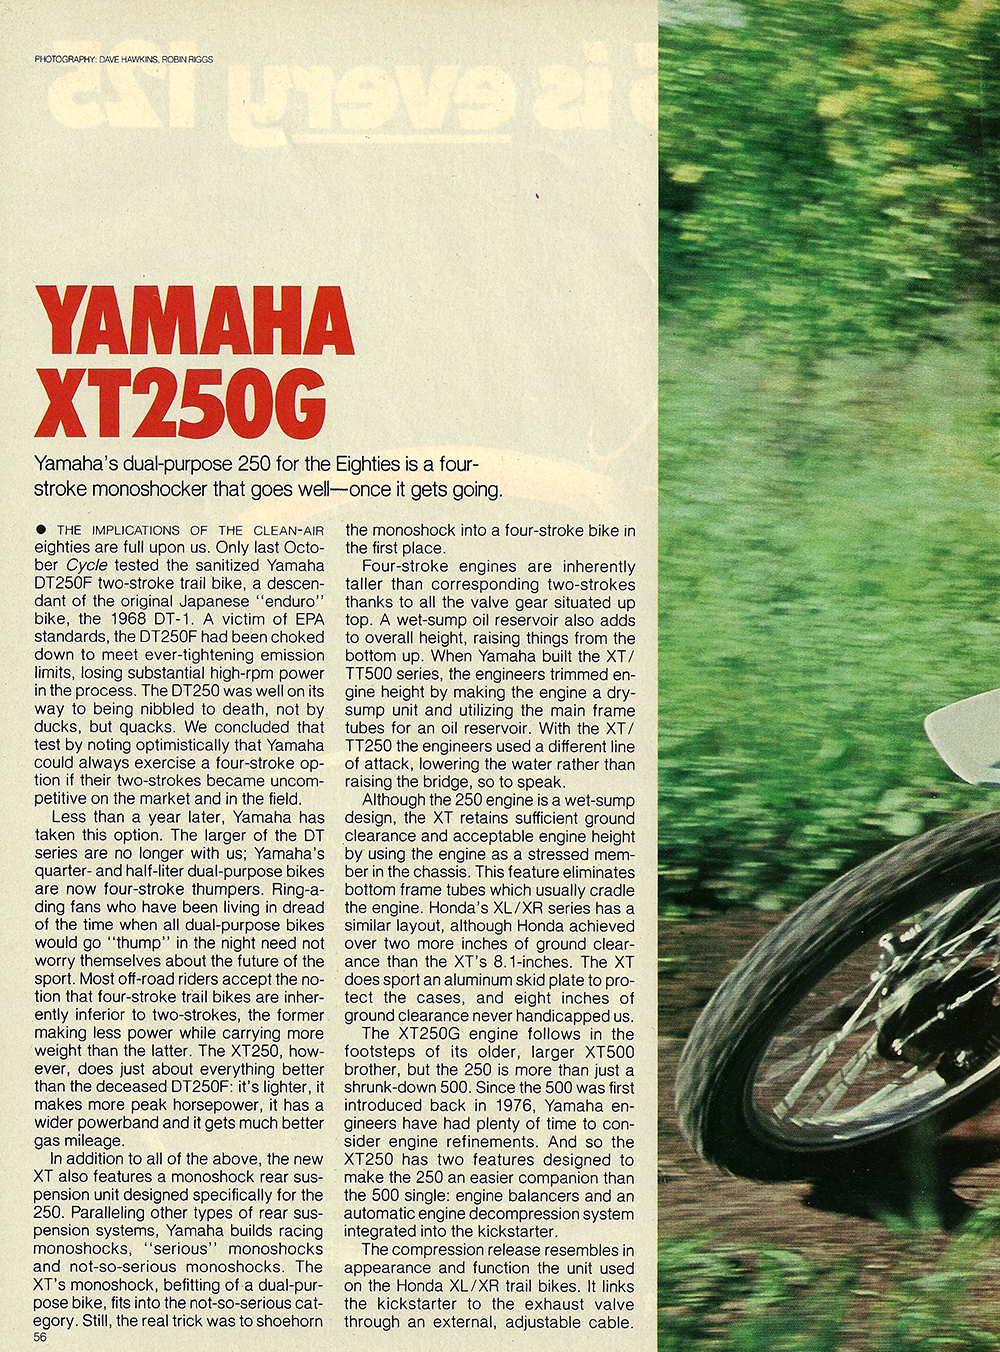 1980 Yamaha XT250 G road test 01.jpg